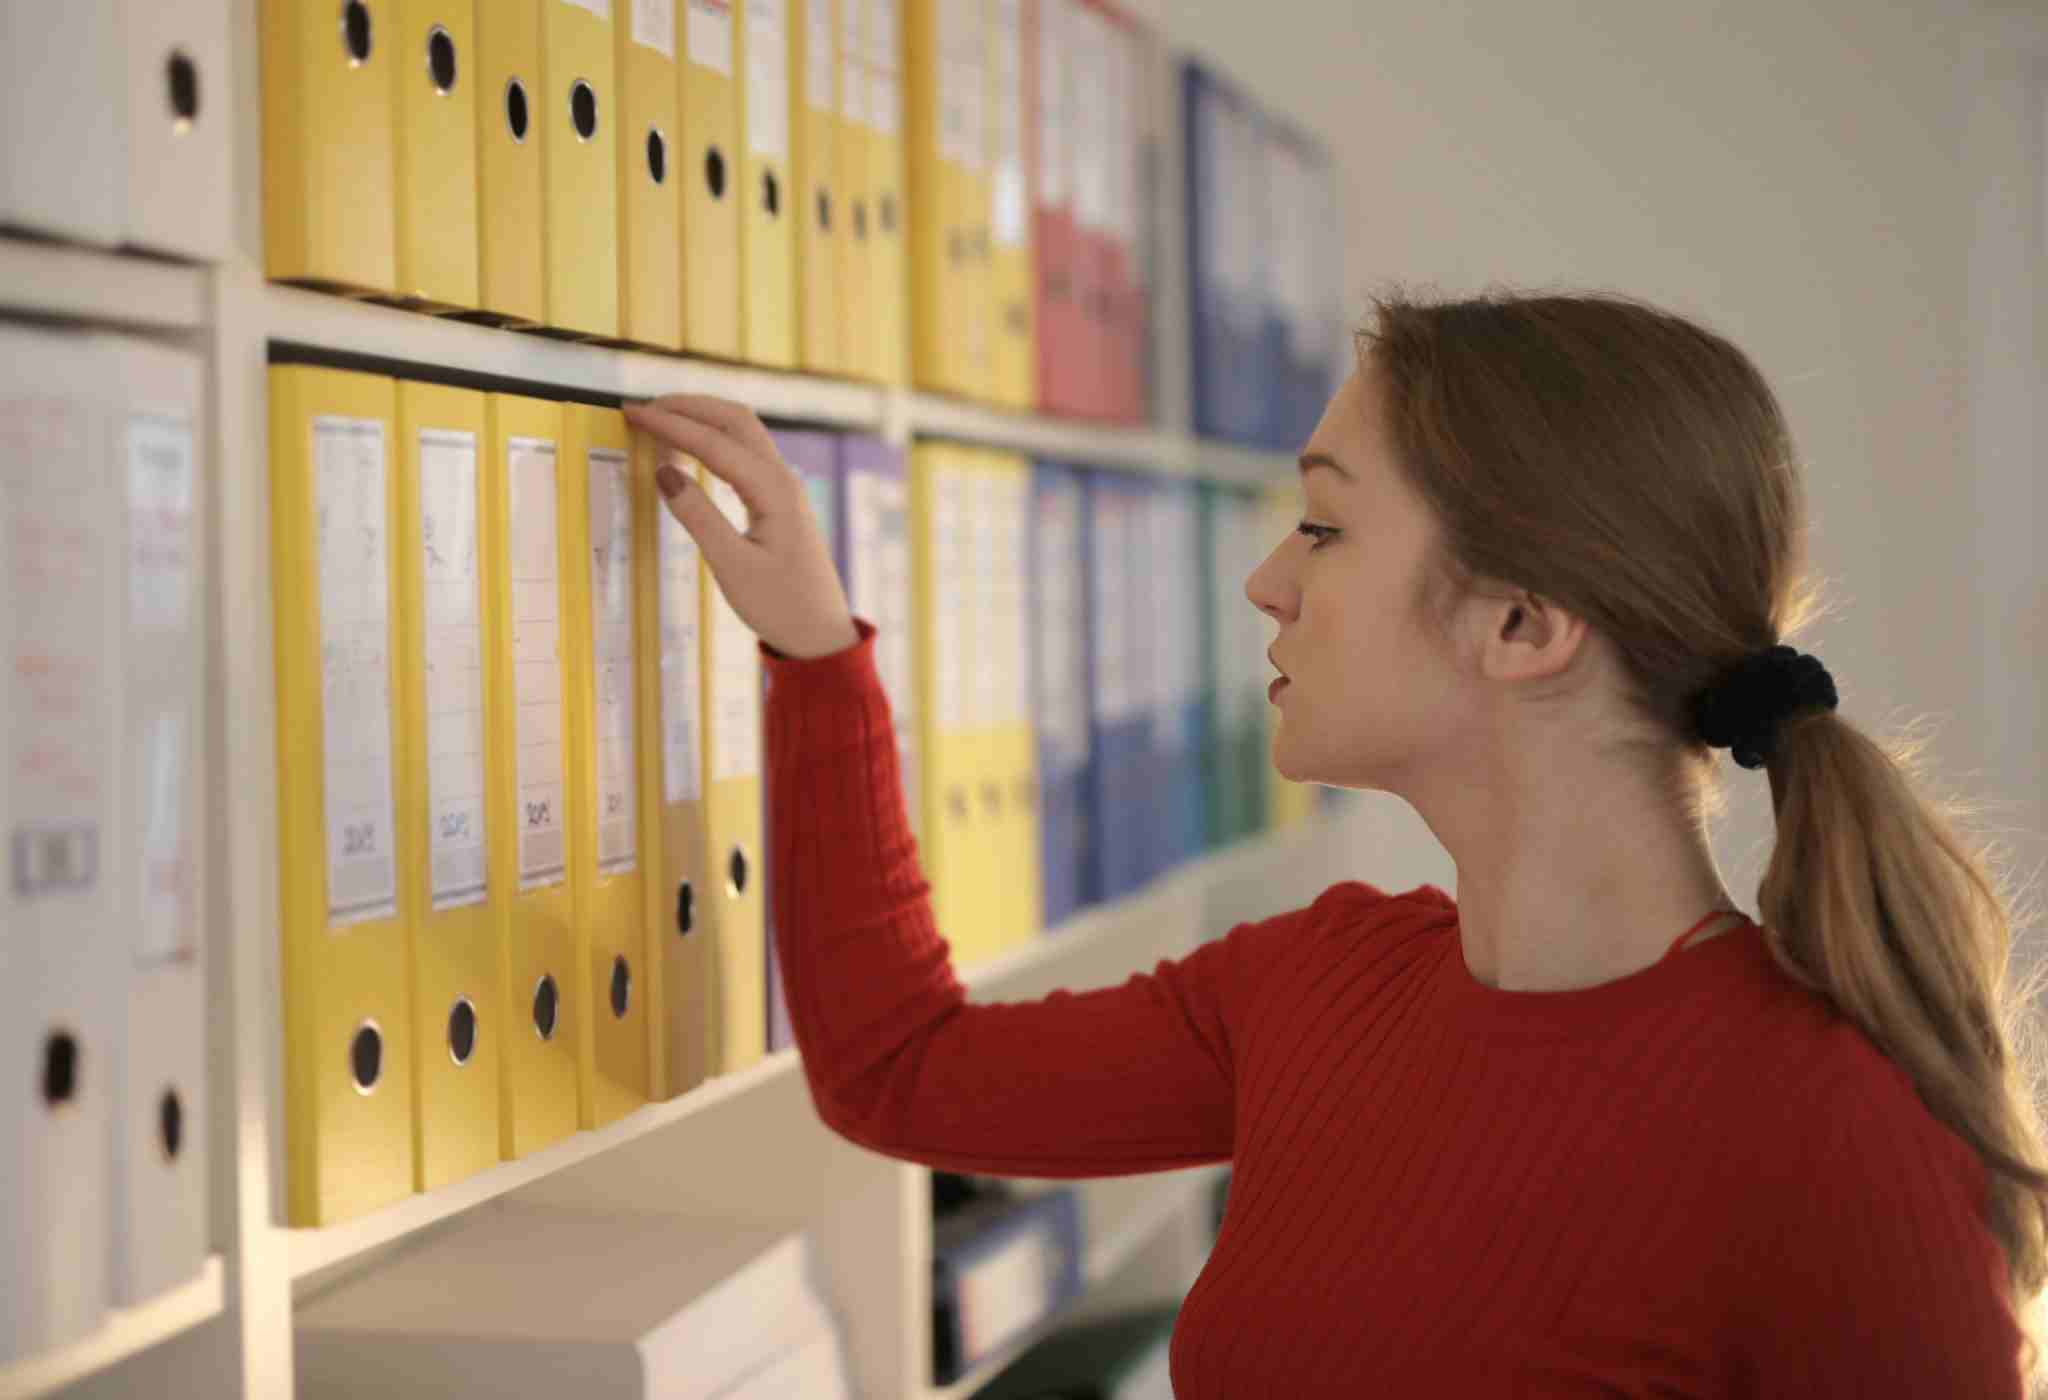 Organizing documents for providing proper access